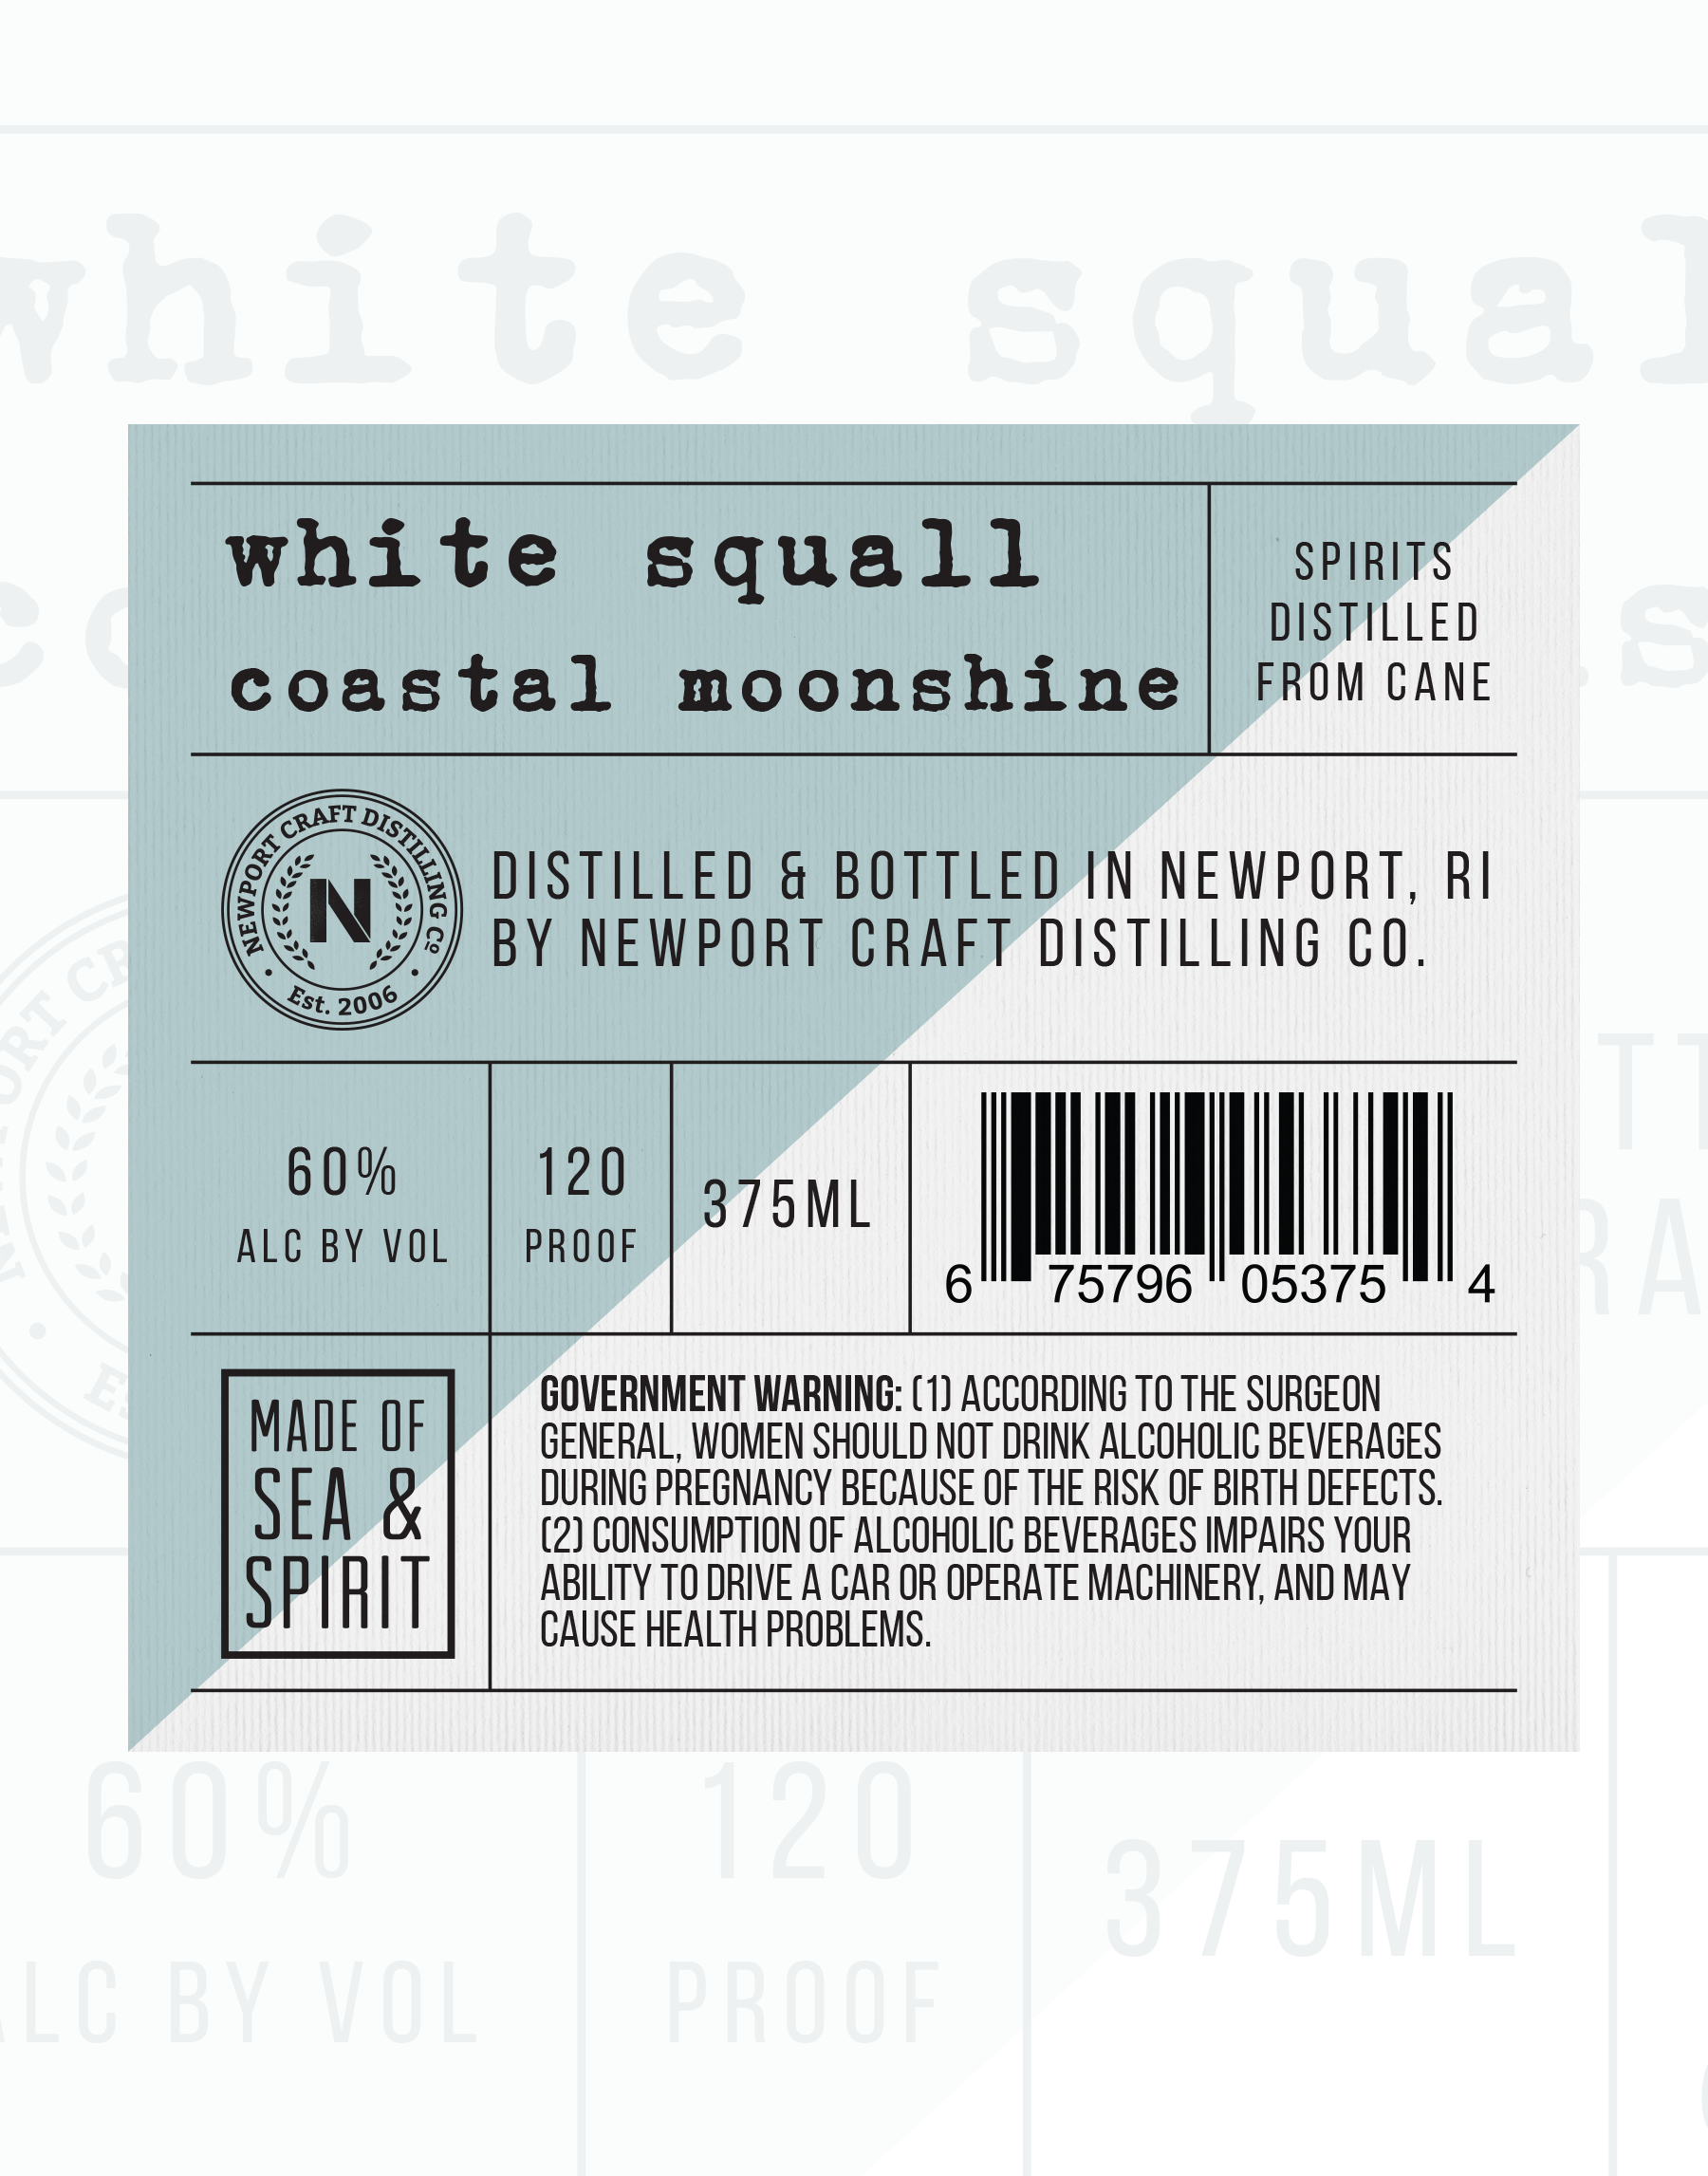 WhiteSquall2.png